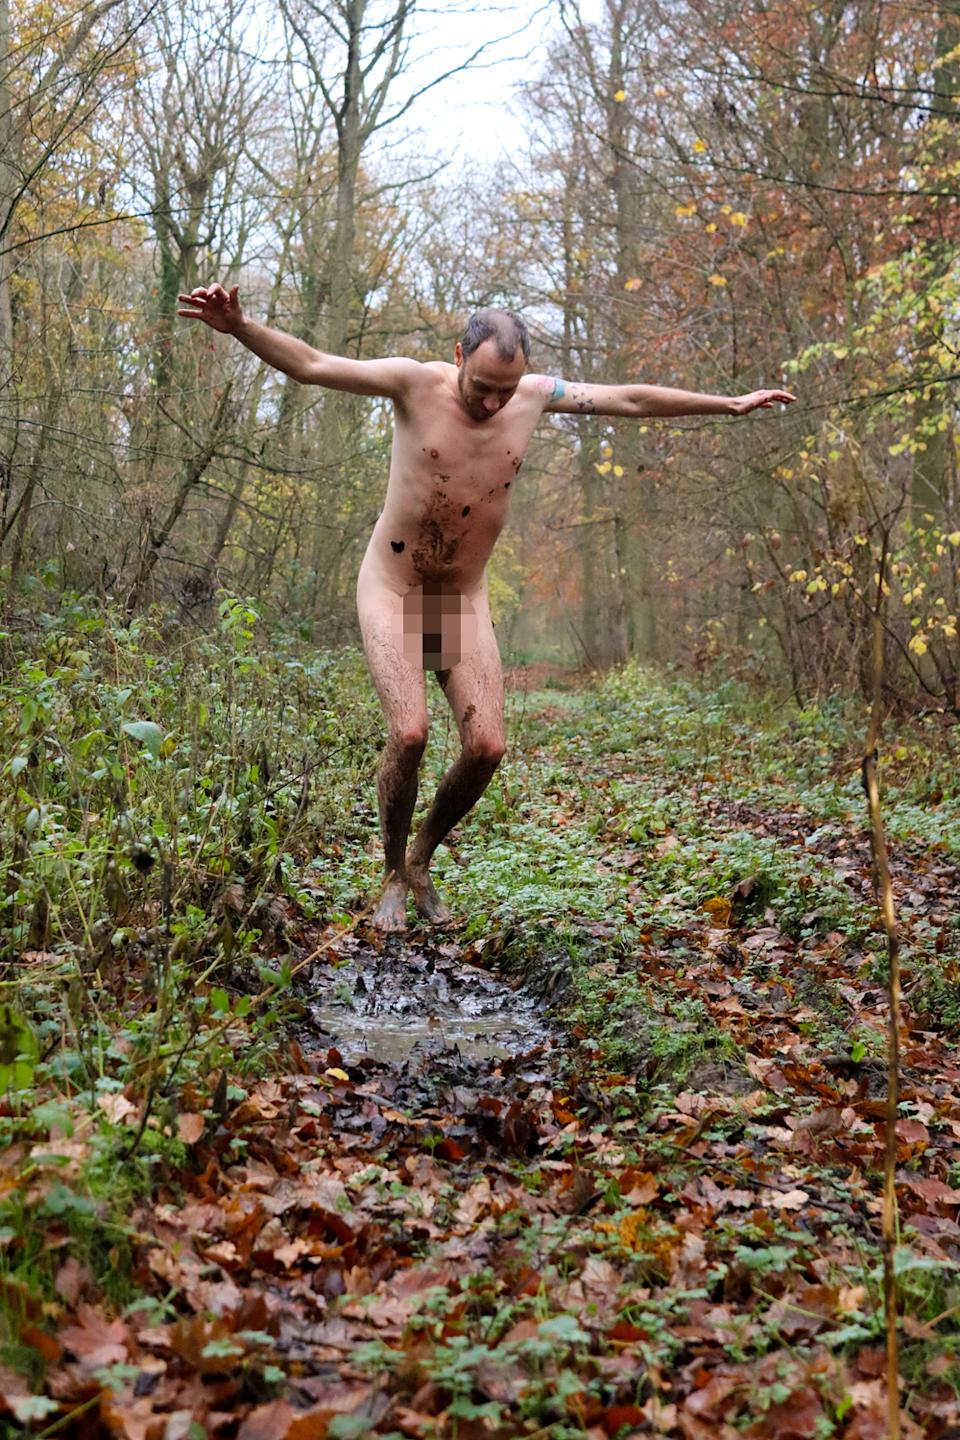 Chris Hood found comfort in jumping naked in muddy puddles. (PA Real Life)